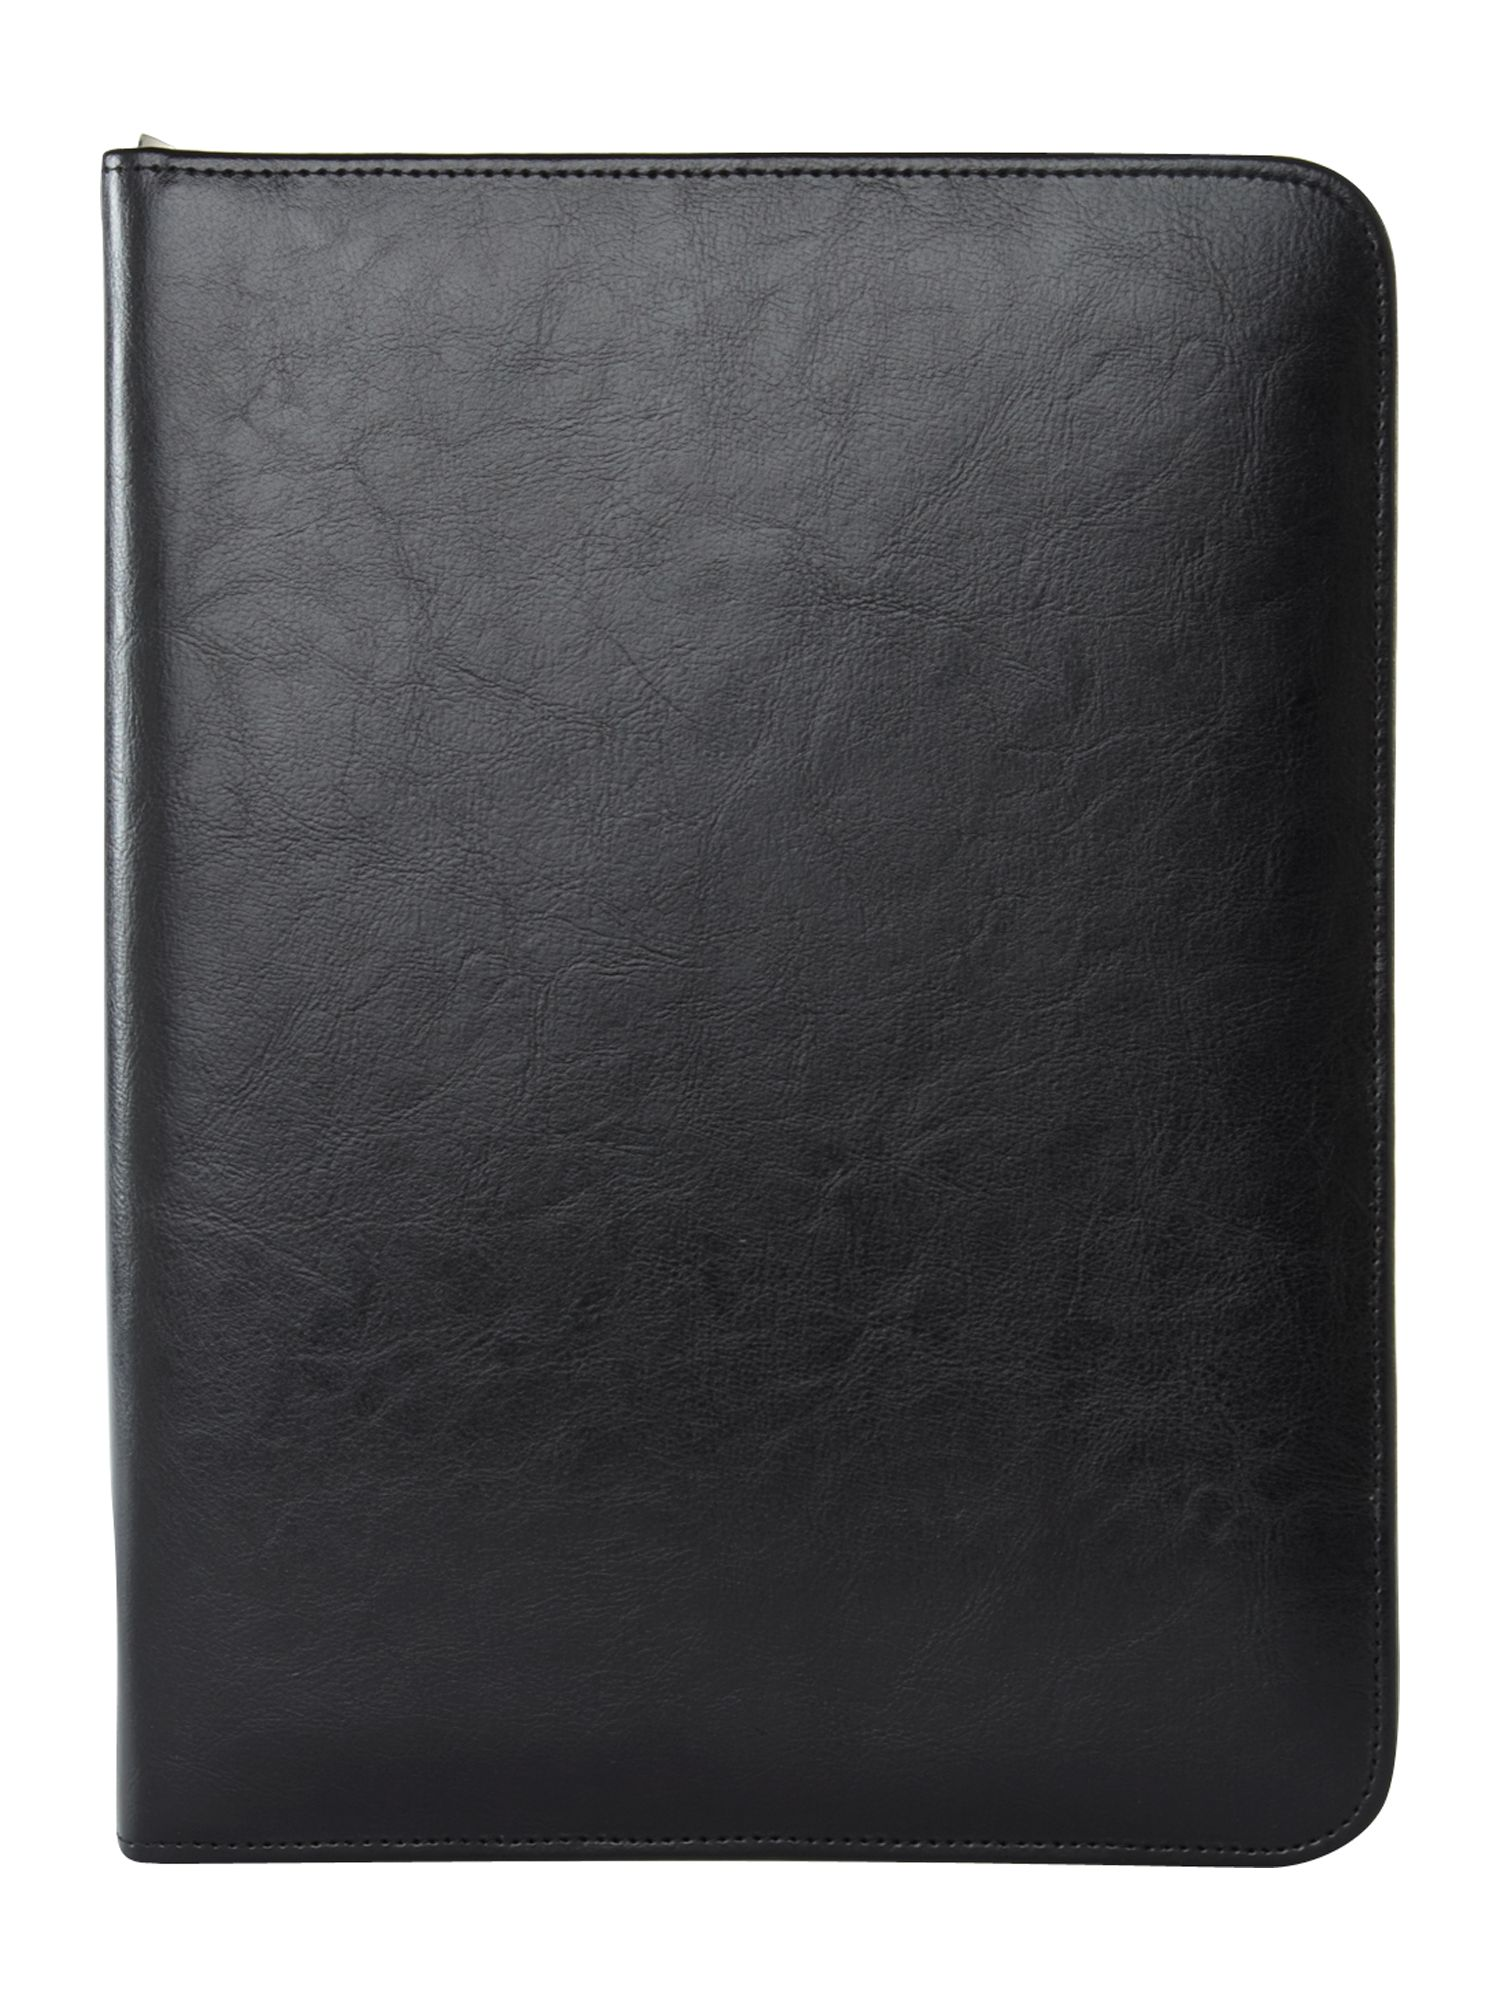 Linea black folio